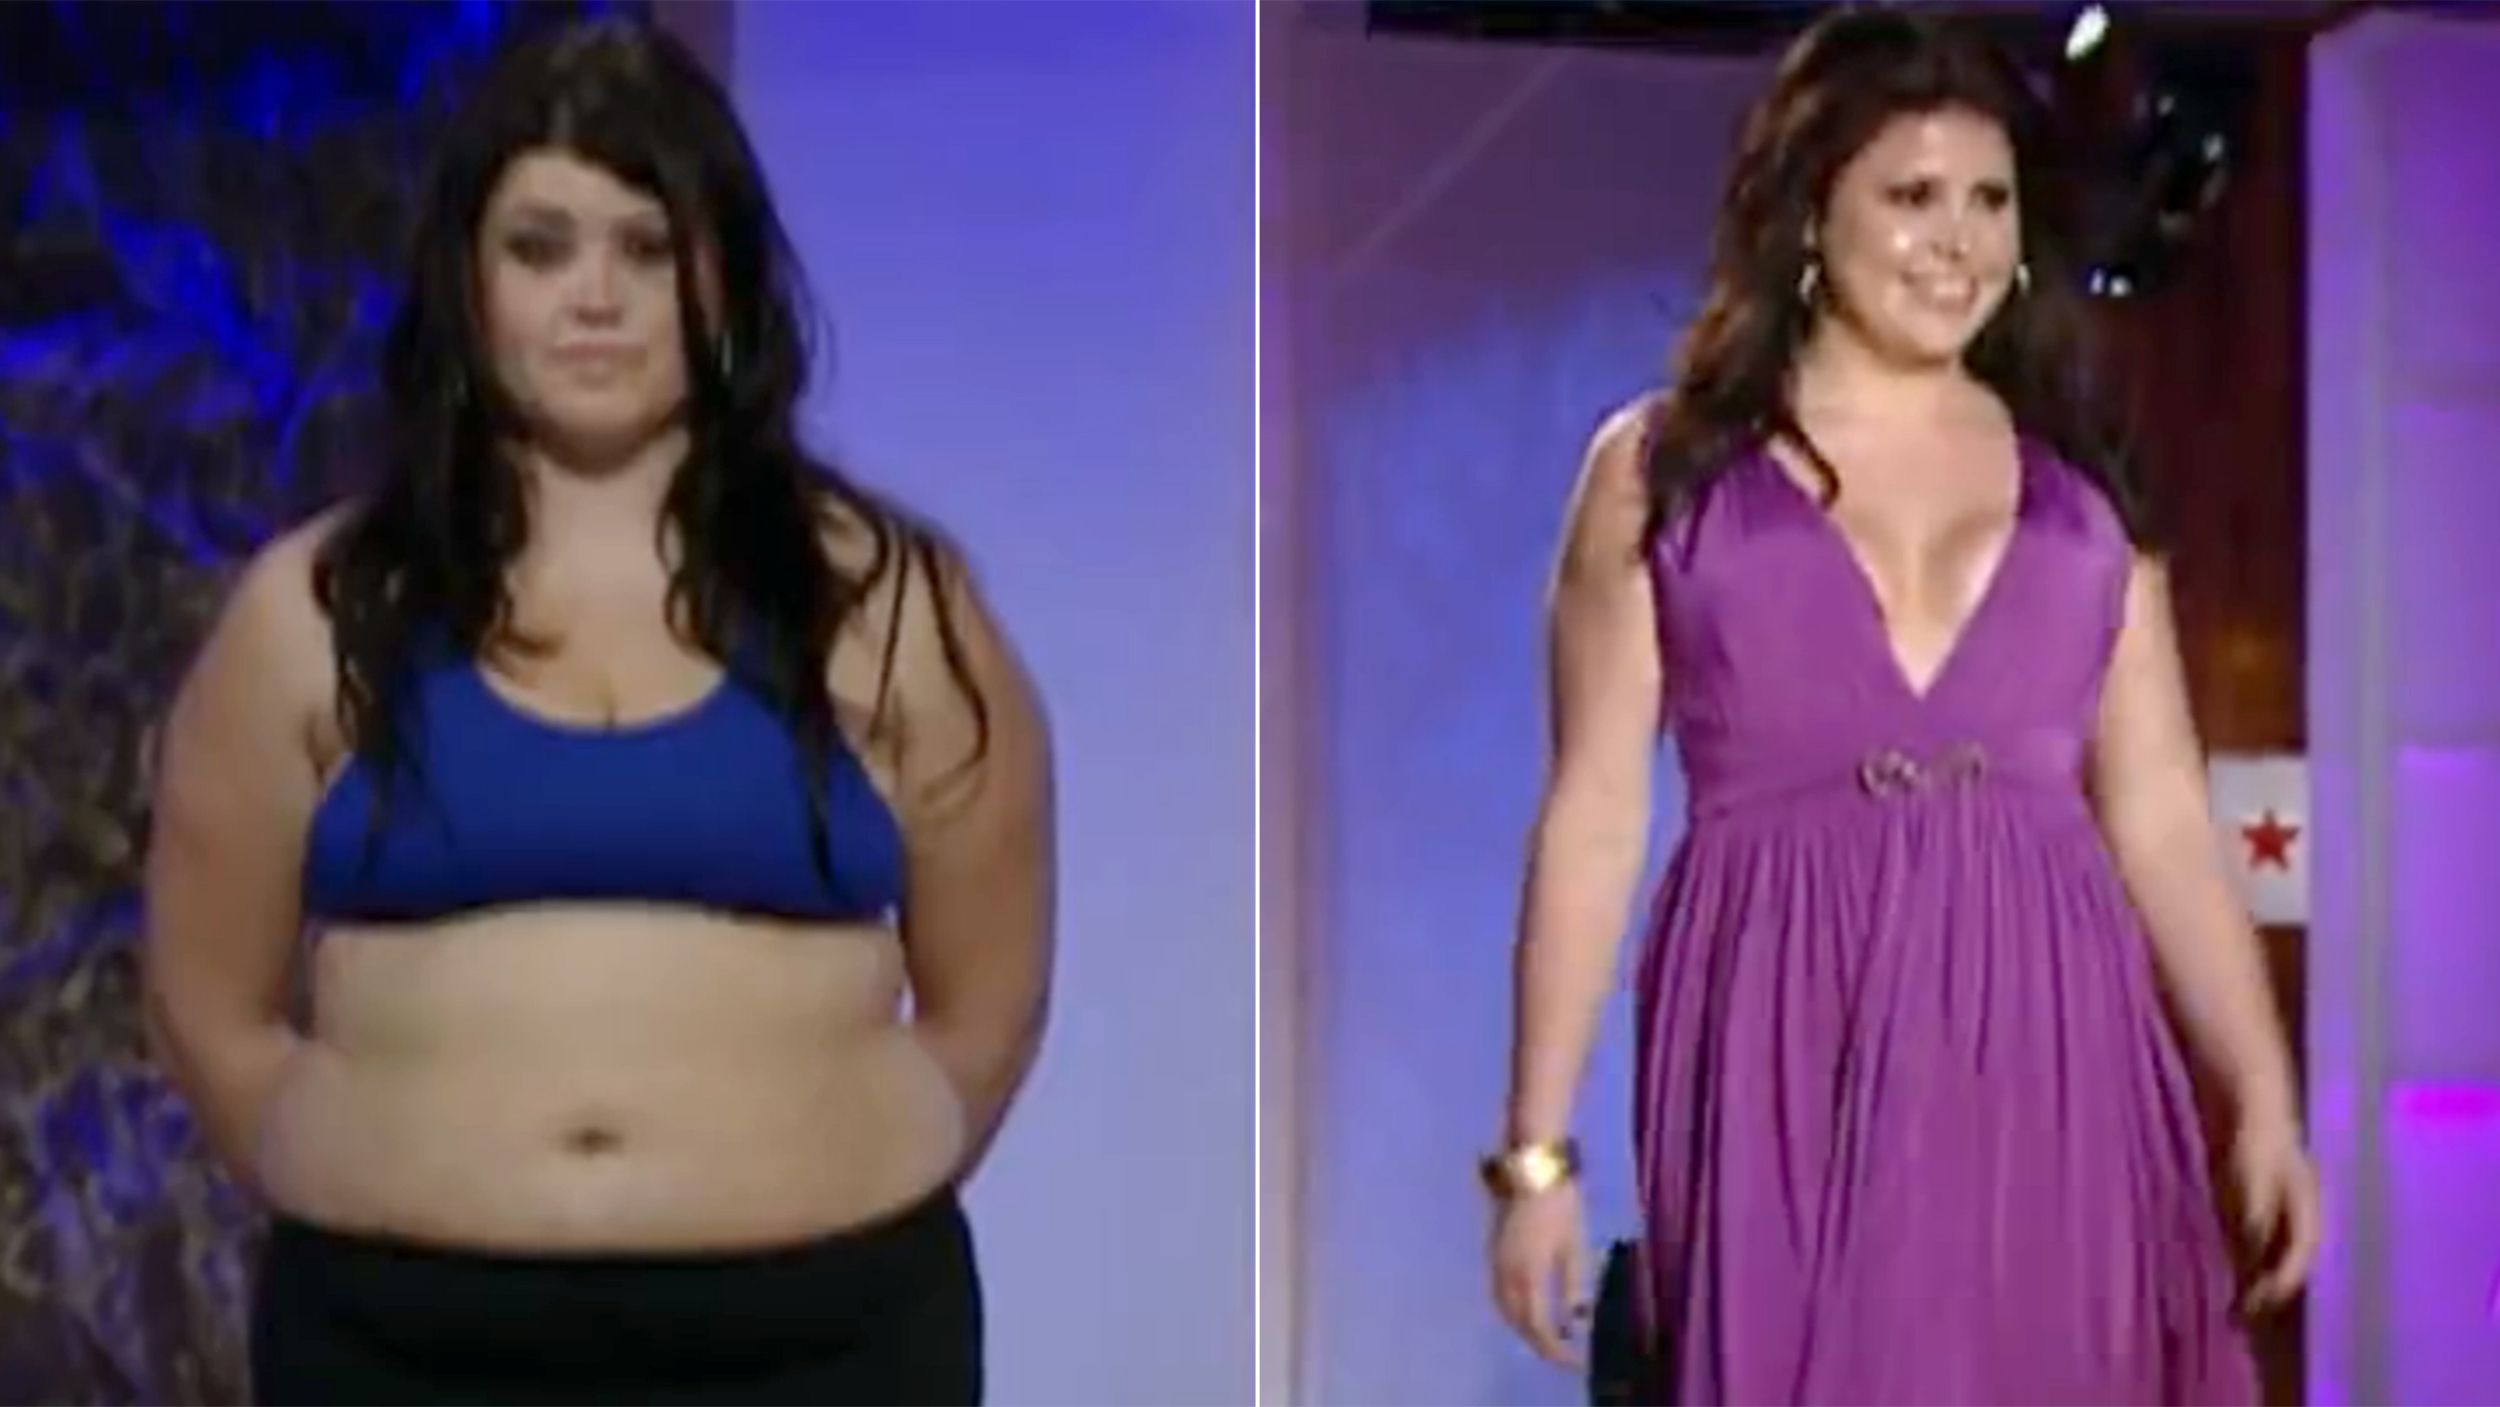 Watch the 10 best 'Biggest Loser' makeovers ever